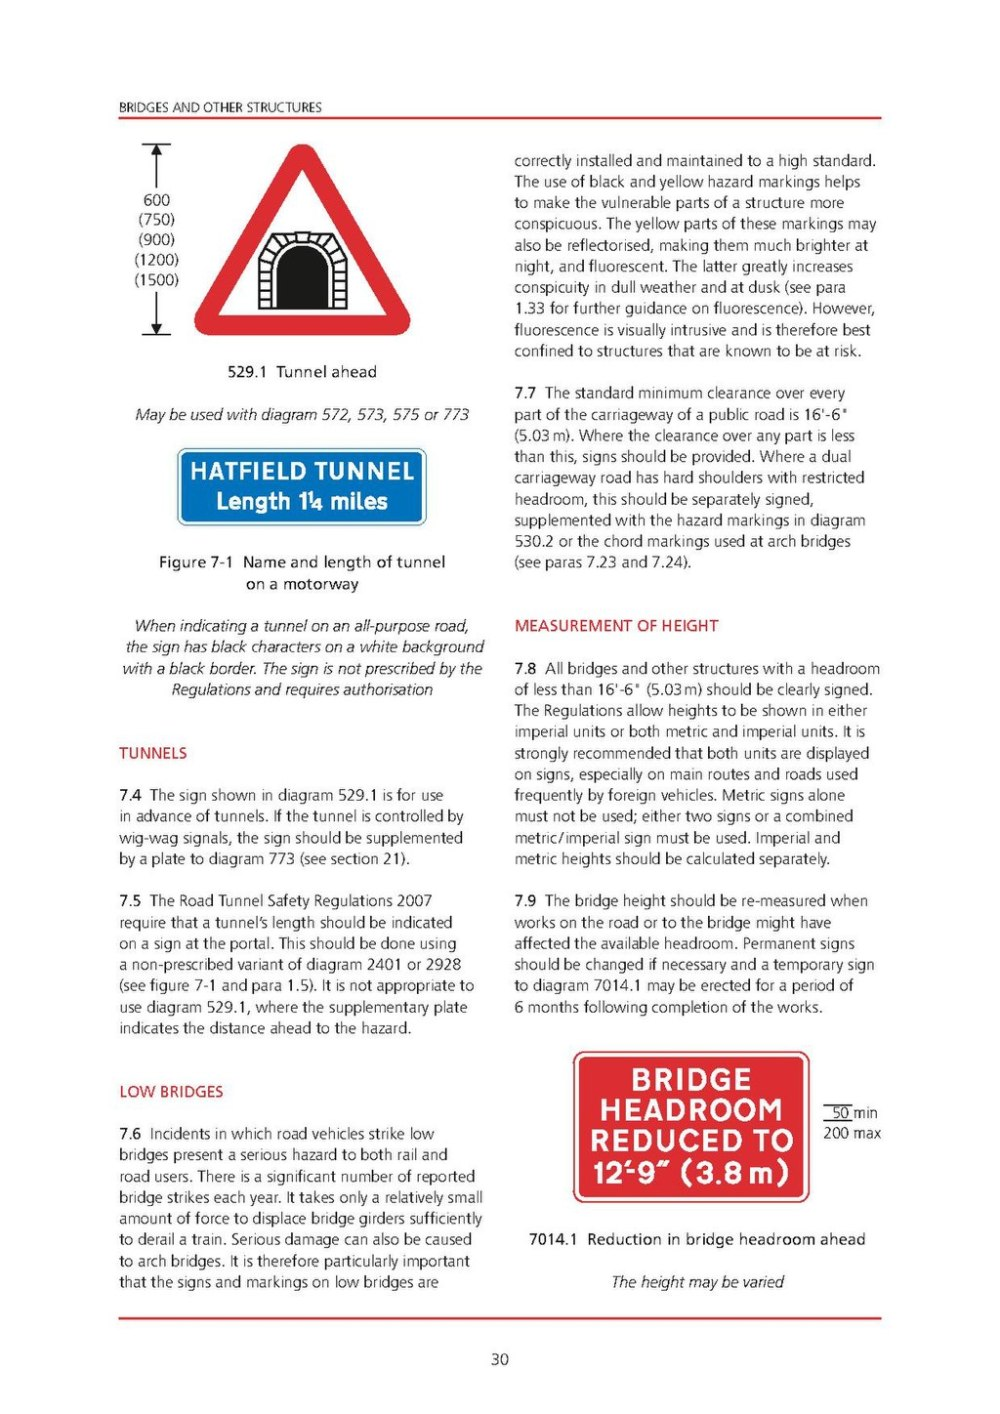 medium resolution of page uk traffic signs manual chapter 4 warning signs 2013 pdf 31 wikisource the free online library